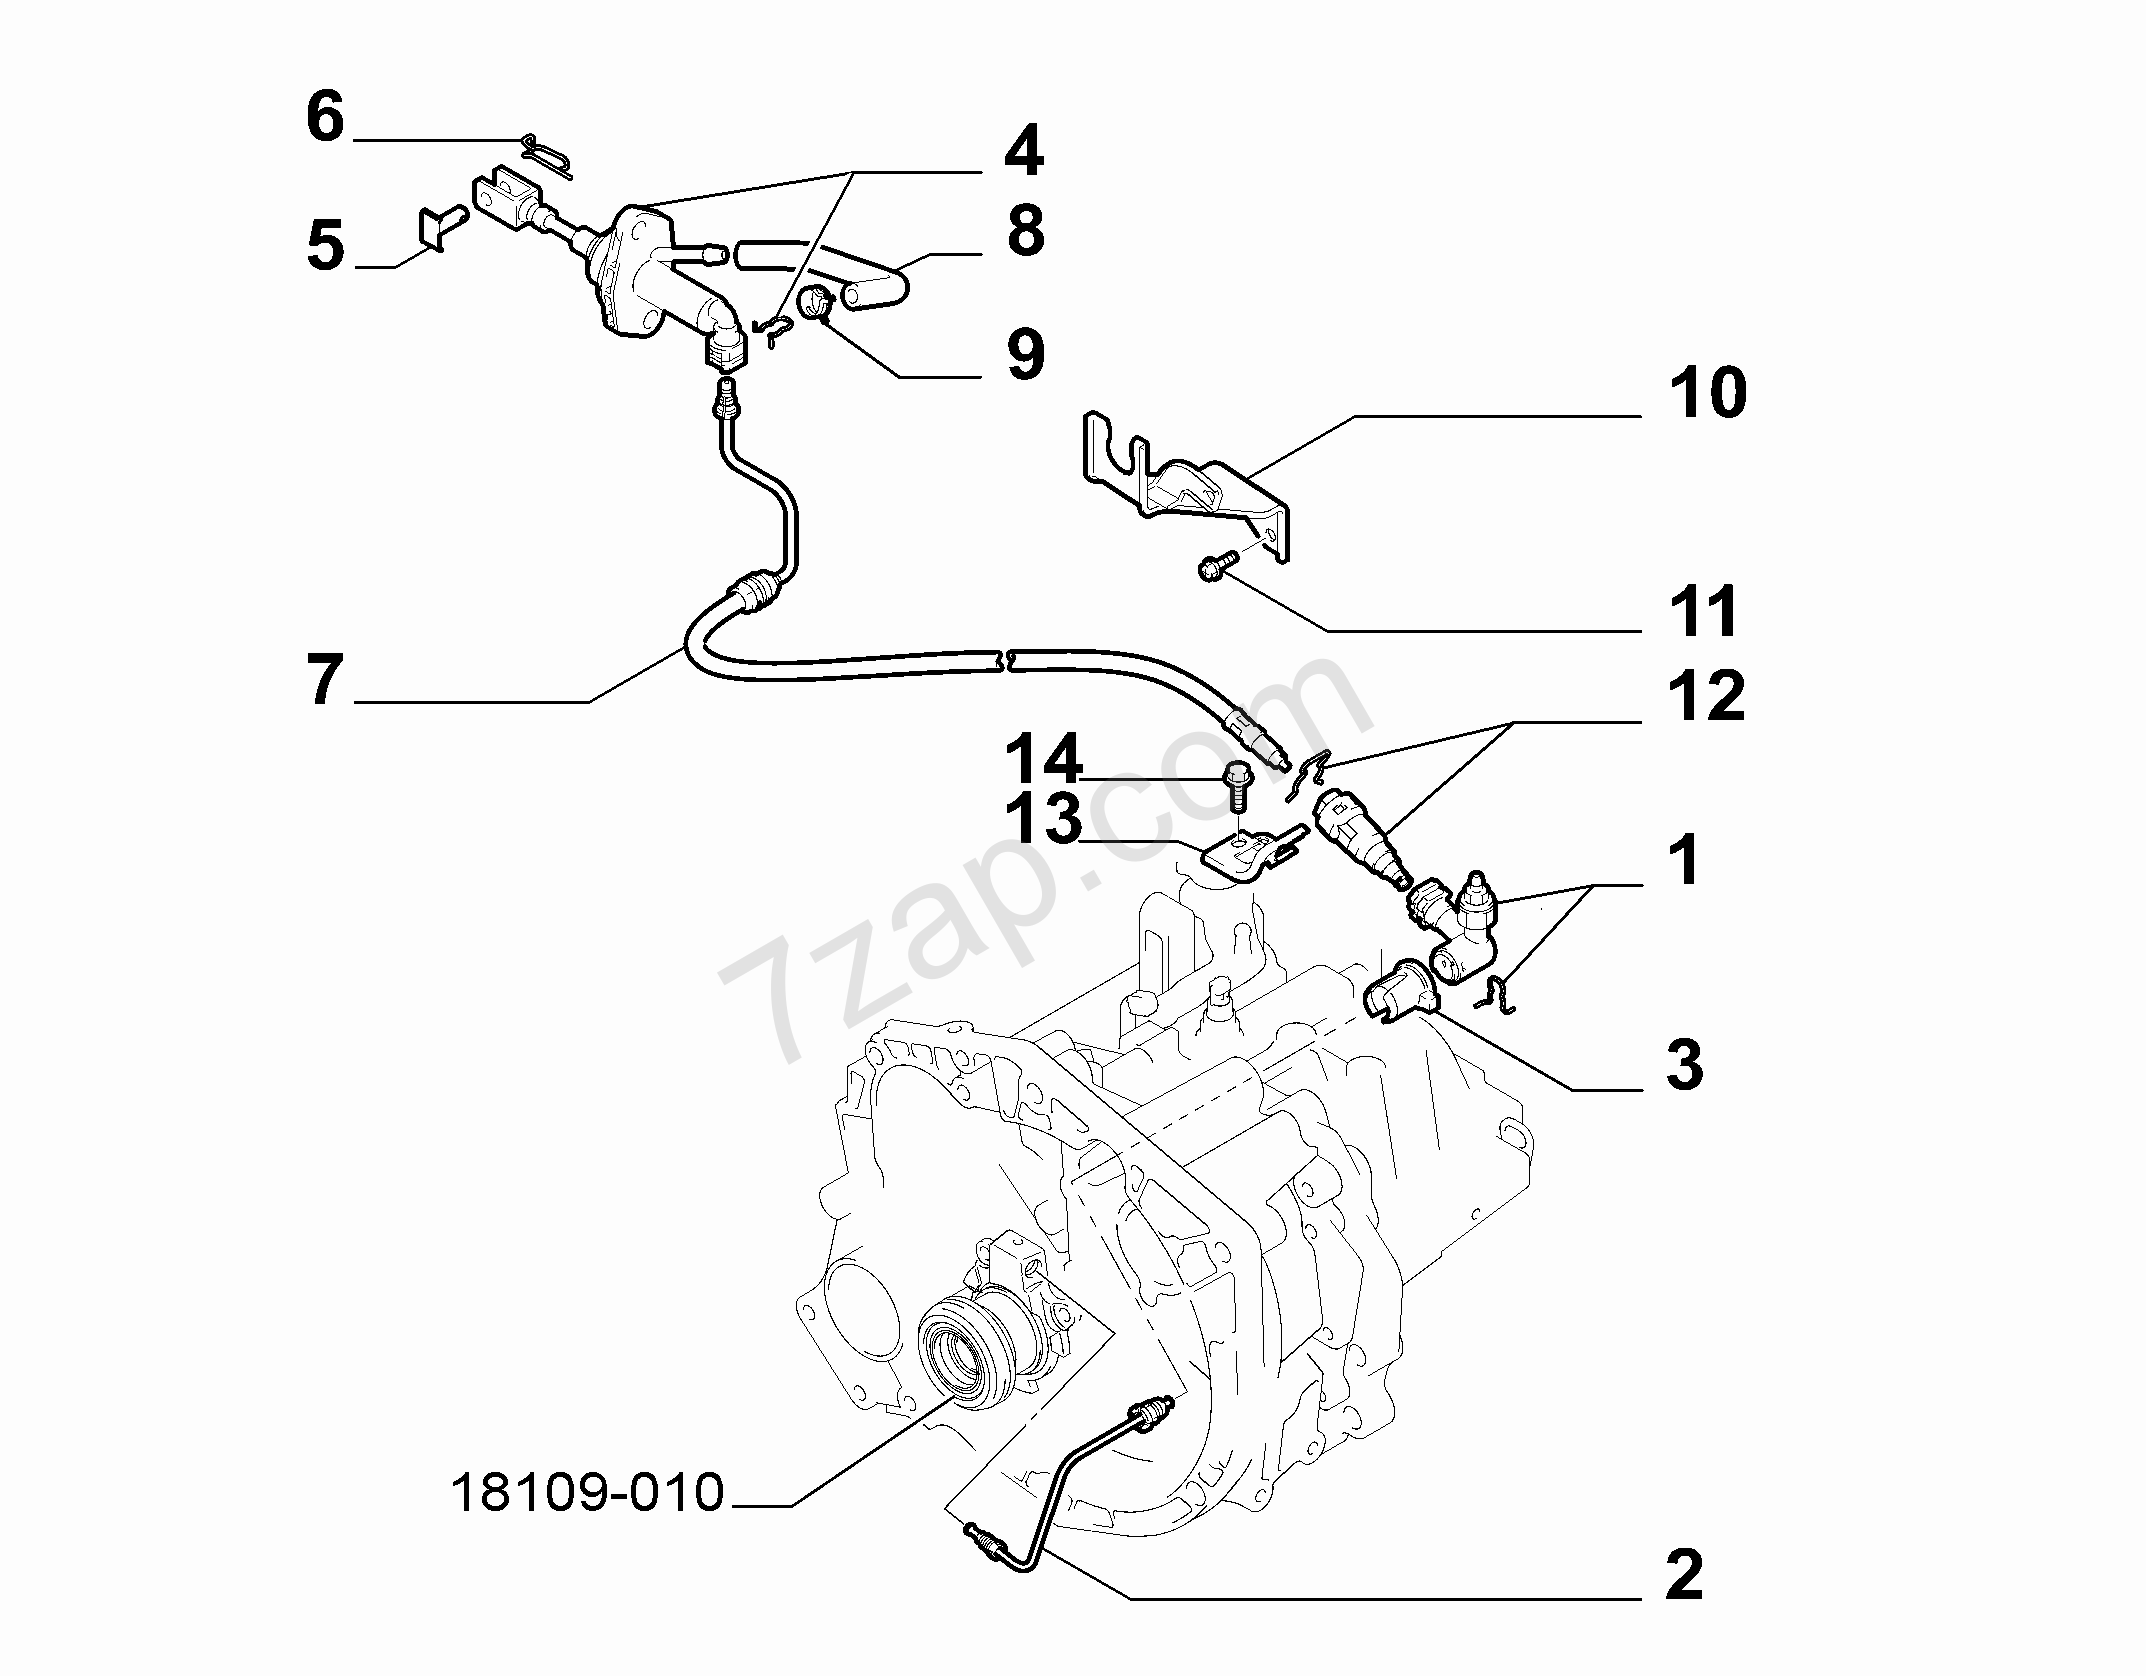 Fiat Sedici Wiring Diagram Electricity Basics 101 2014 Ducato Fuse Clutch Lever Cylinder And Hose My 2012 Rh 7zap Com 1969 500 Farm Tractor